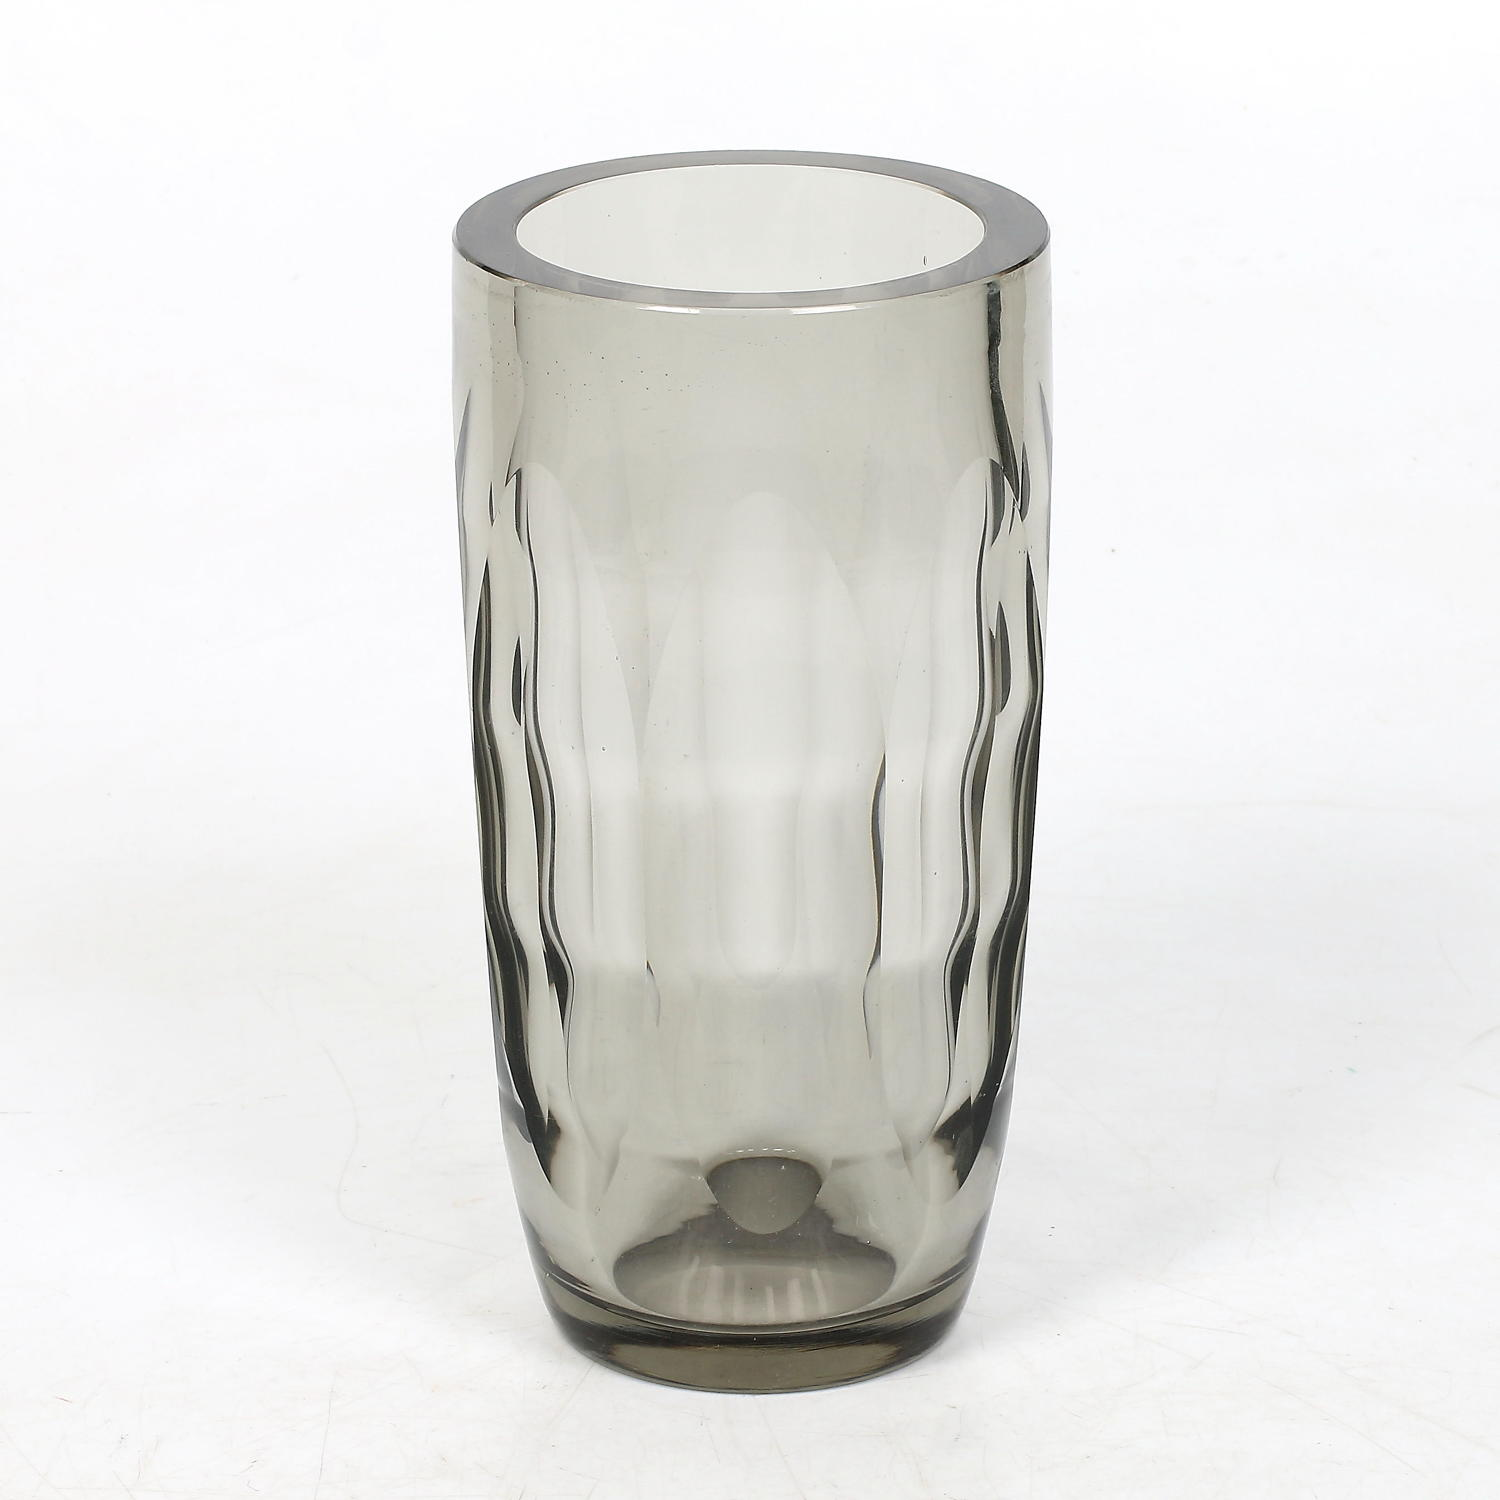 A 1930's Swedish lead glass vase by Elis Bergh at Kosta